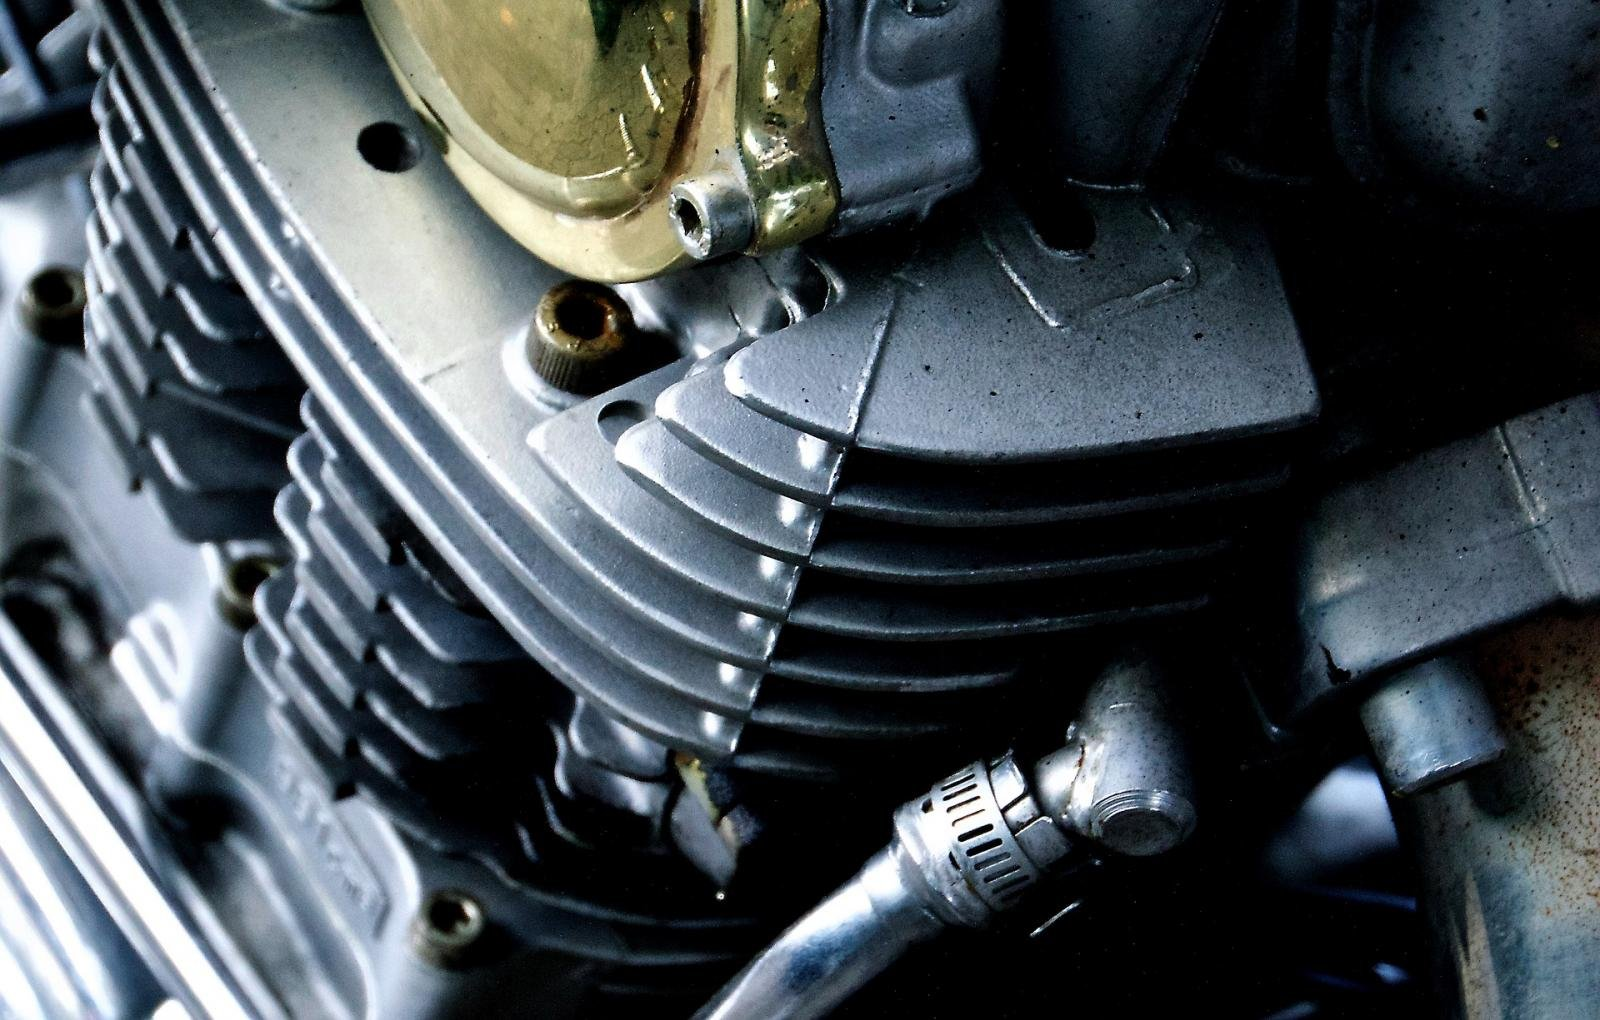 A motorcycle engine